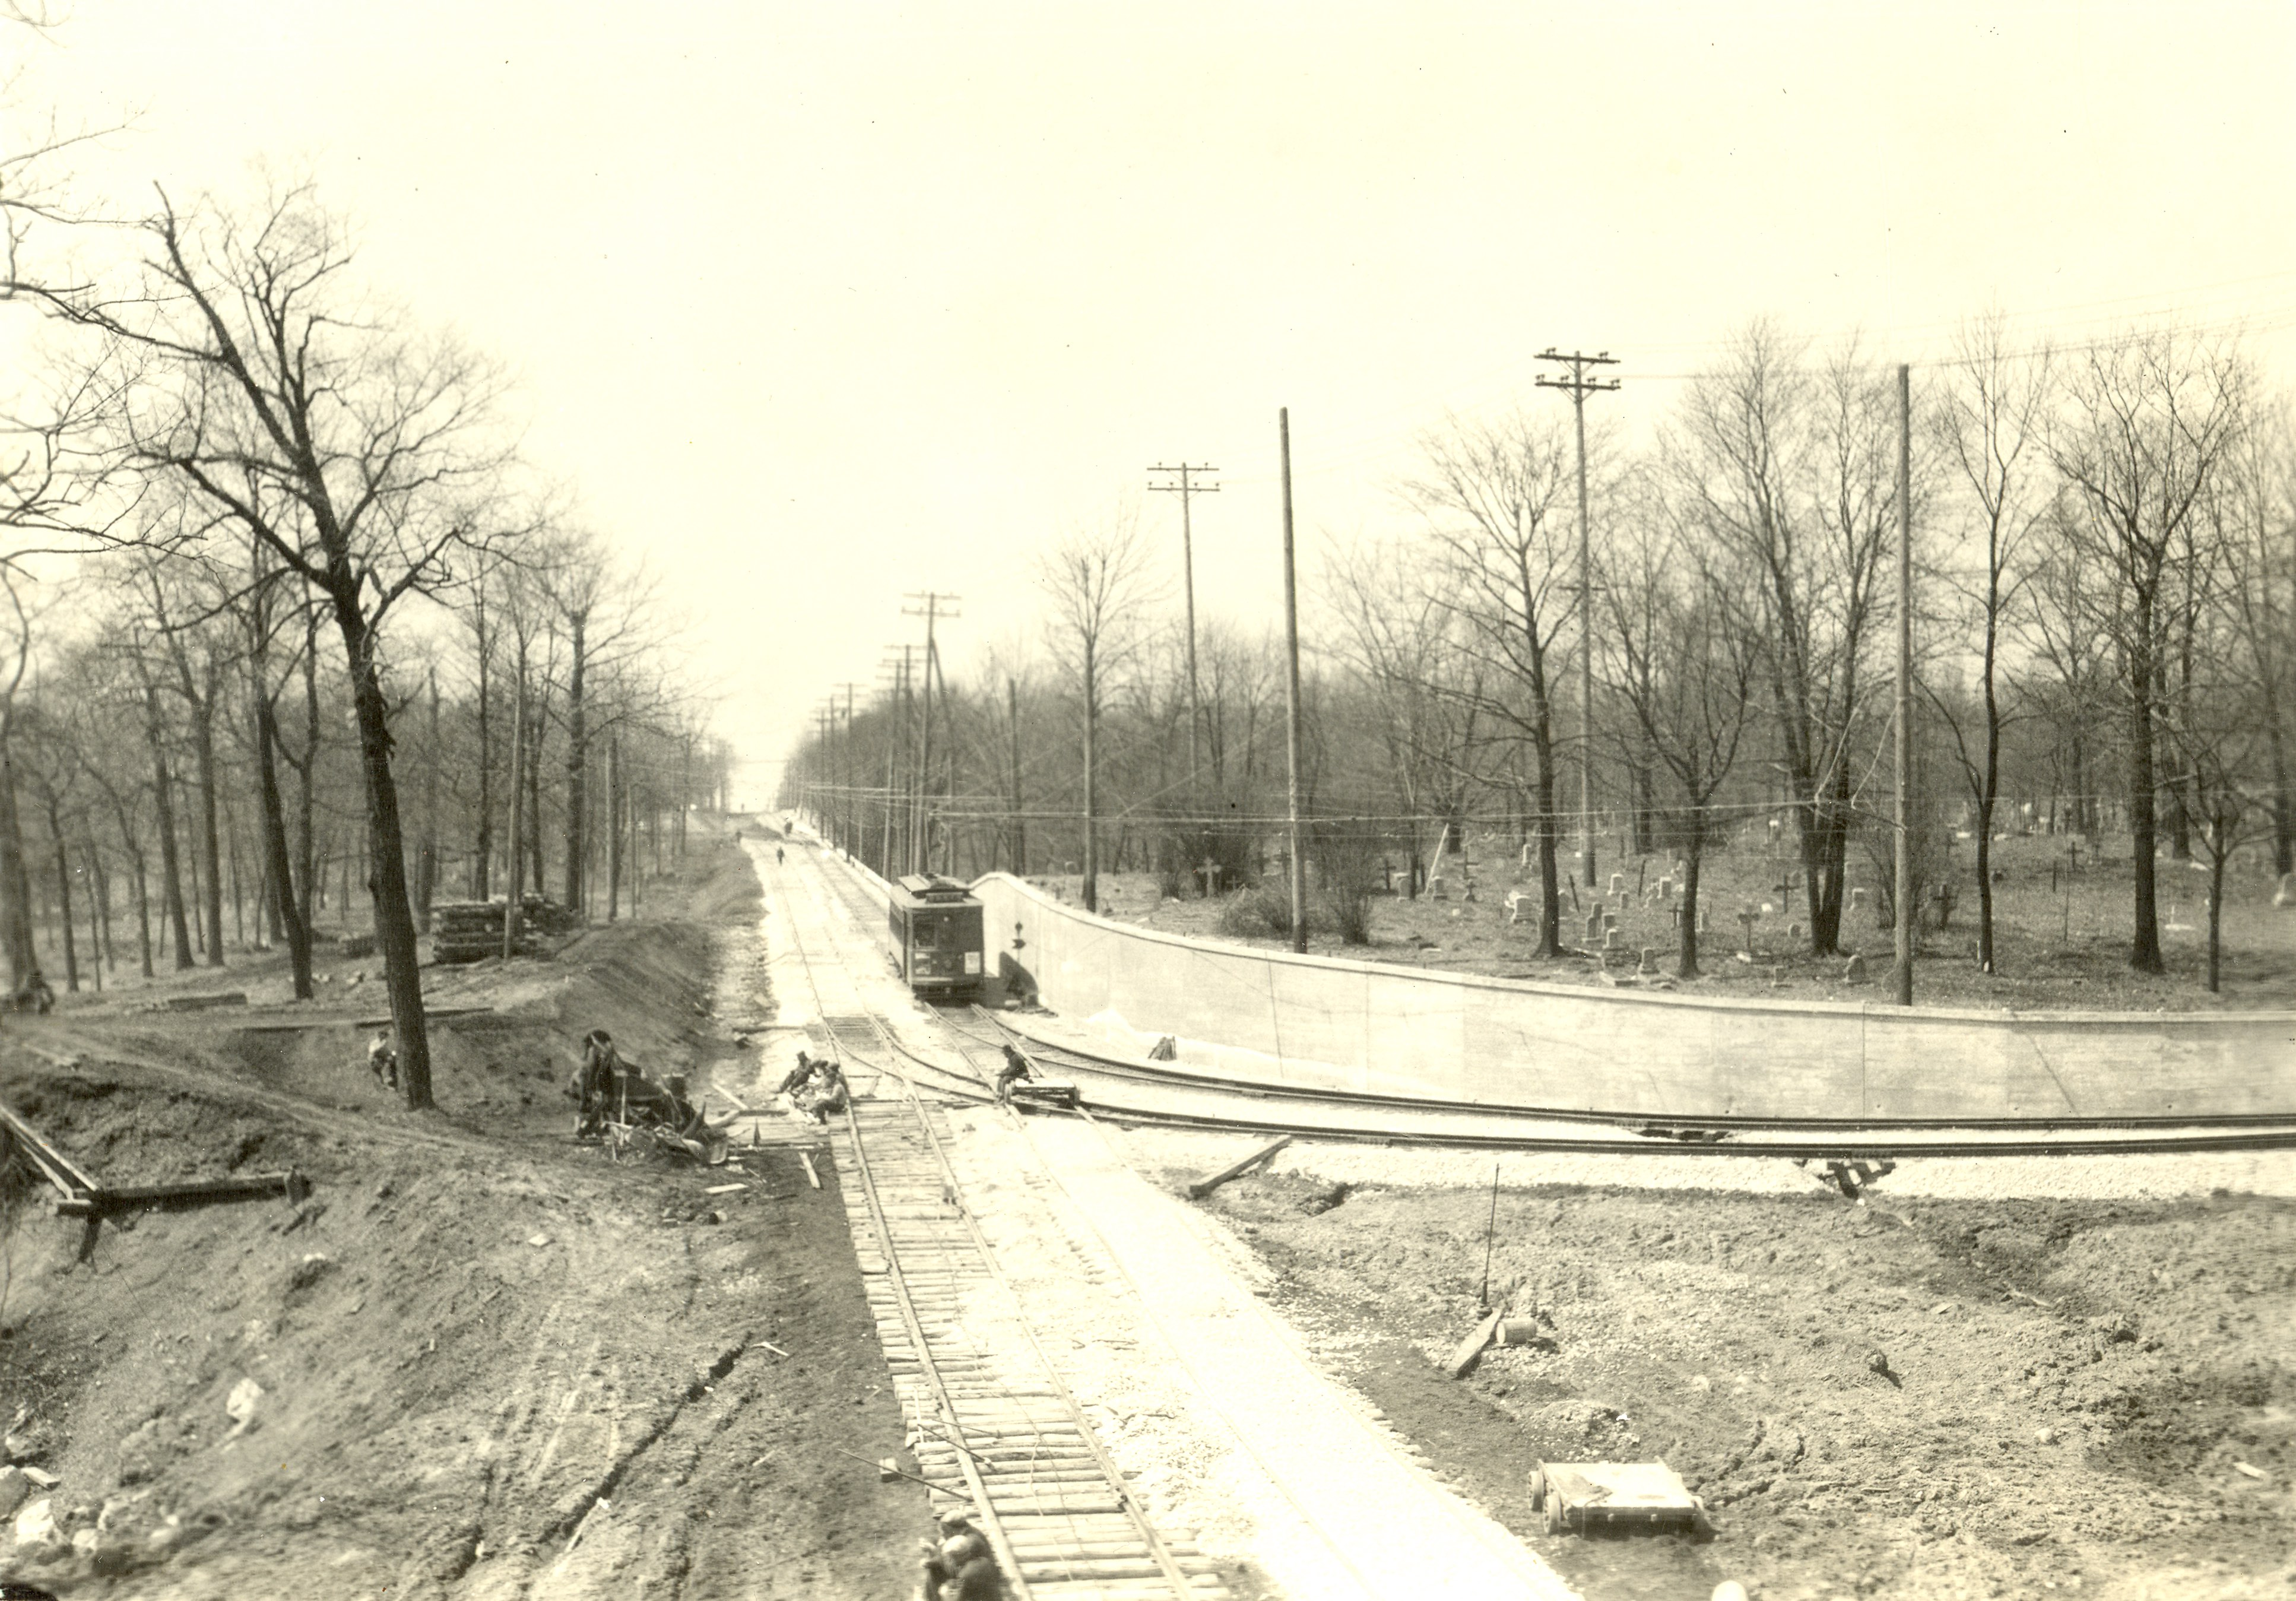 <table class=&quot;lightbox&quot;><tr><td colspan=2 class=&quot;lightbox-title&quot;>Calvary Cemetery in Story Hill</td></tr><tr><td colspan=2 class=&quot;lightbox-caption&quot;>Story Hill's Calvary Cemetery is visible on the right in this photograph  of a streetcar.</td></tr><tr><td colspan=2 class=&quot;lightbox-spacer&quot;></td></tr><tr class=&quot;lightbox-detail&quot;><td class=&quot;cell-title&quot;>Source: </td><td class=&quot;cell-value&quot;>From the Historic Photo Collection of the Milwaukee Public Library. Reprinted with permission.<br /><a href=&quot;http://content.mpl.org/cdm/singleitem/collection/HstoricPho/id/4774/rec/4&quot; target=&quot;_blank&quot;>Milwaukee Public Library</a></td></tr><tr class=&quot;filler-row&quot;><td colspan=2>&nbsp;</td></tr></table>